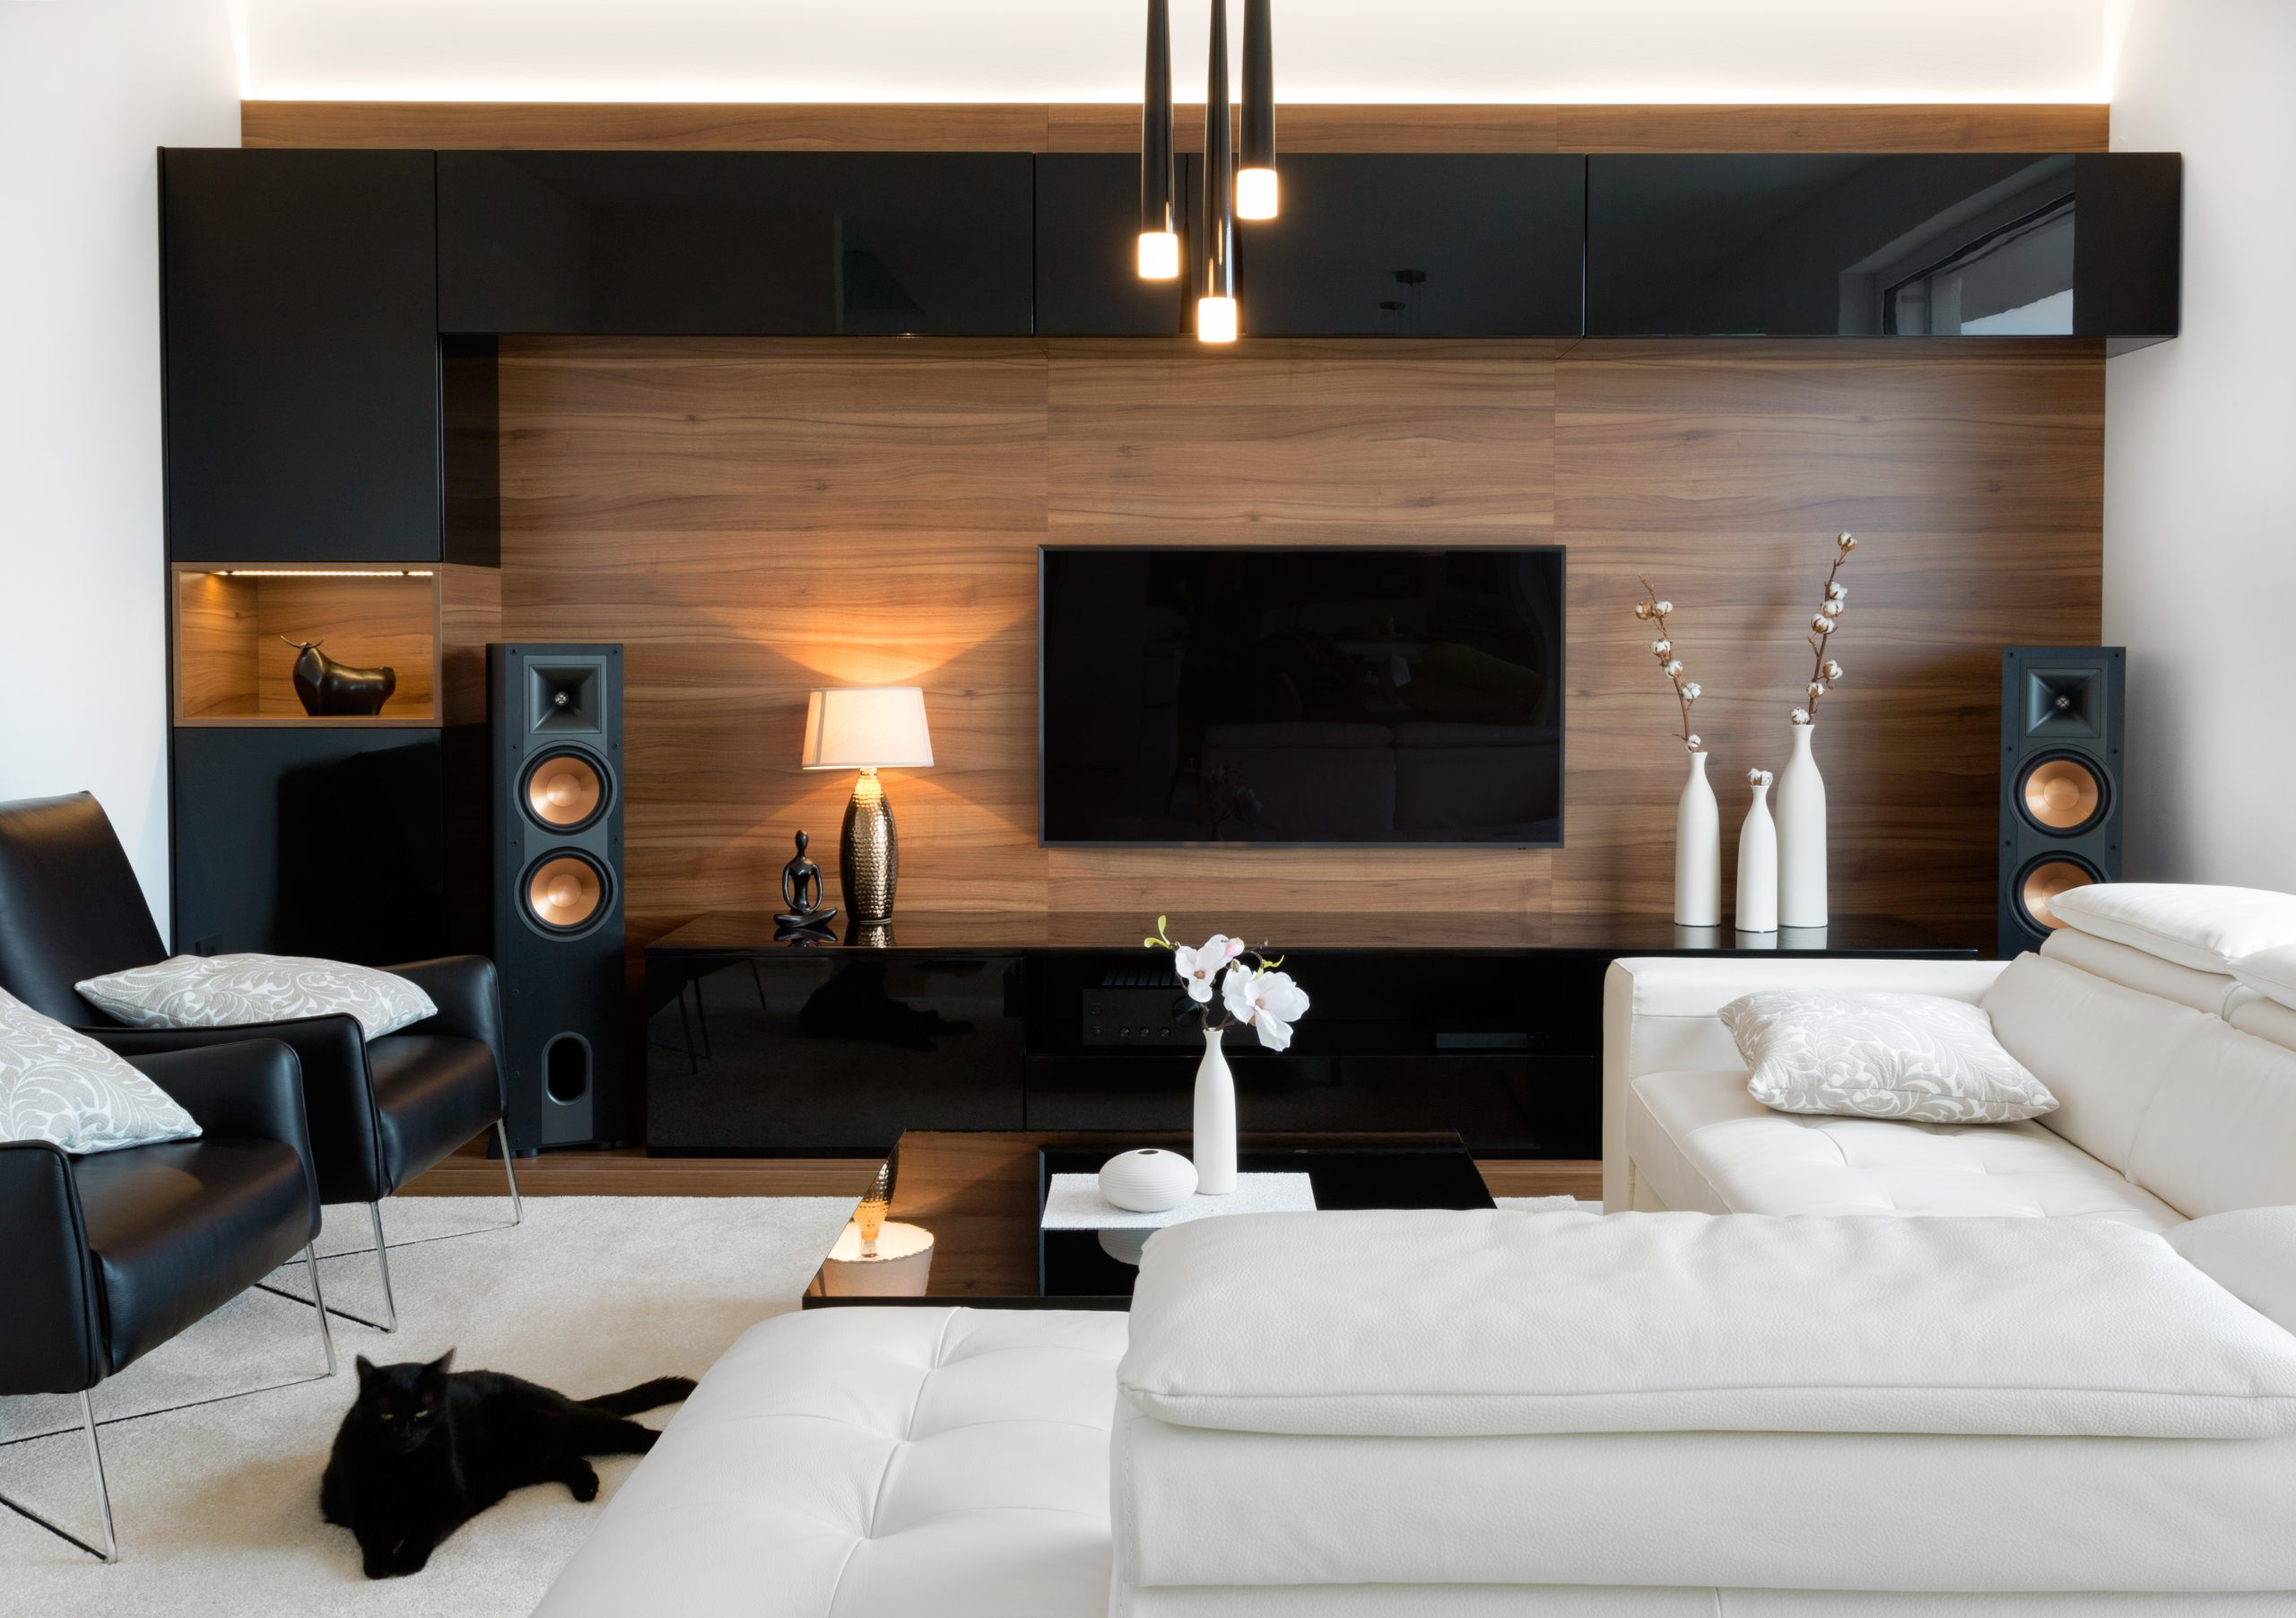 A black cat relaxing in a spacious, modern living room.